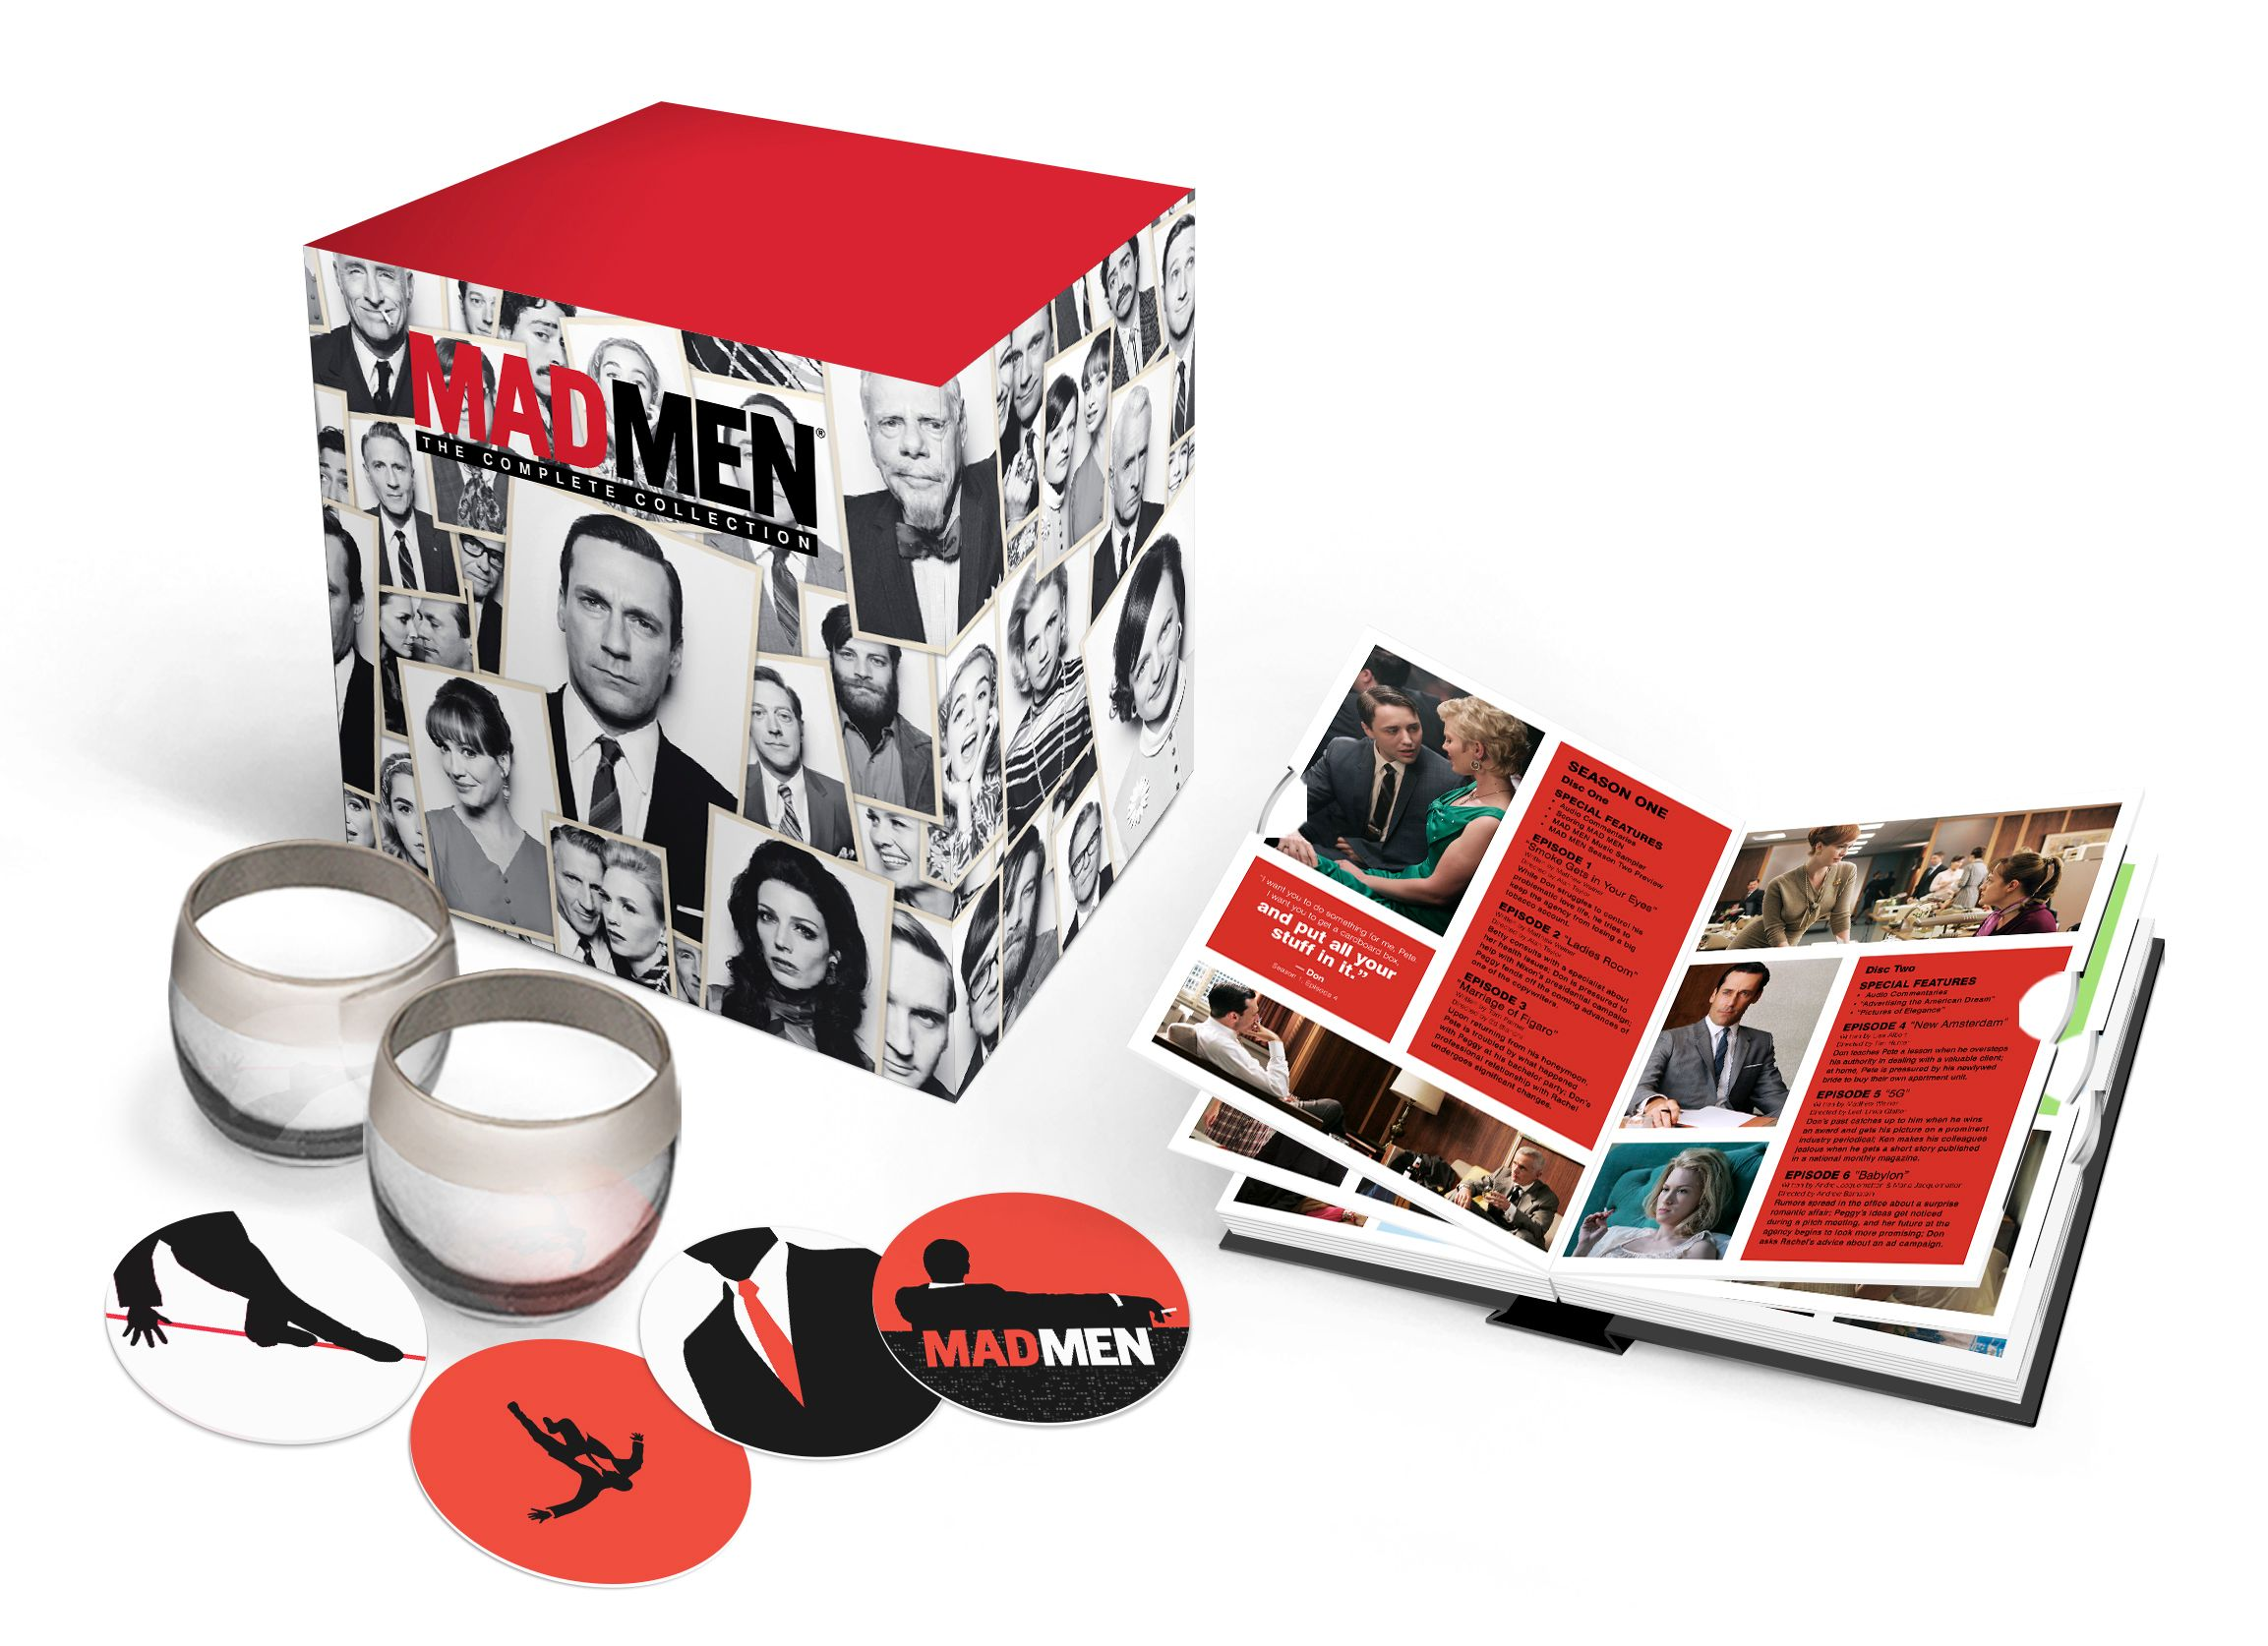 Mad Men: The Complete Collection Blu-ray Revealed | Collider